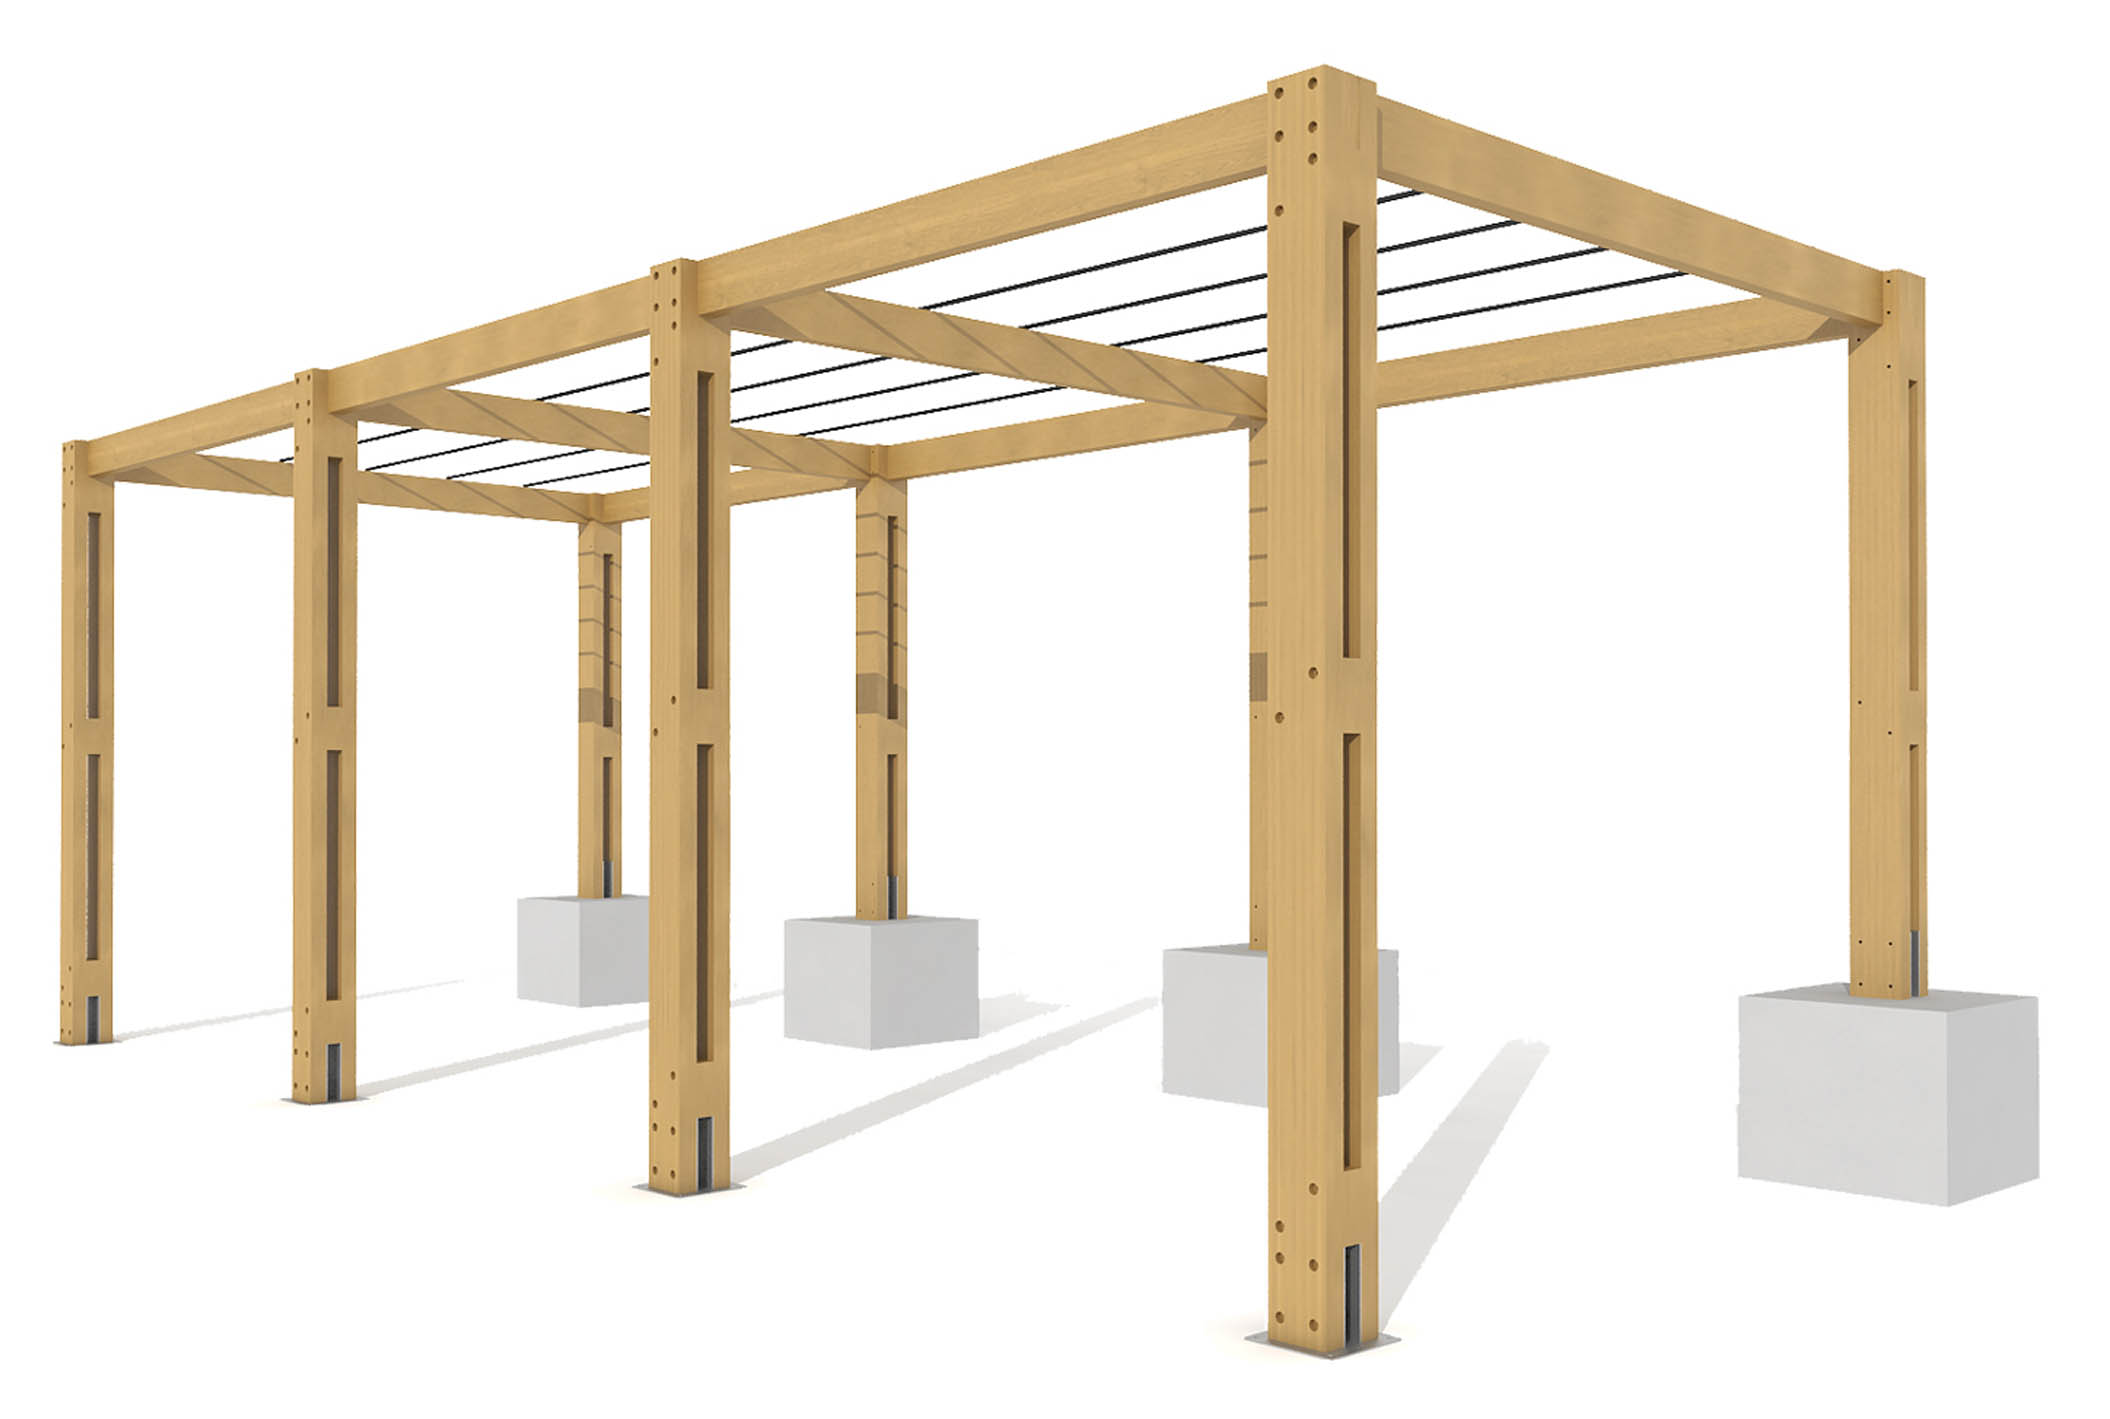 Rendering of pergola of wooden beams and iron bars